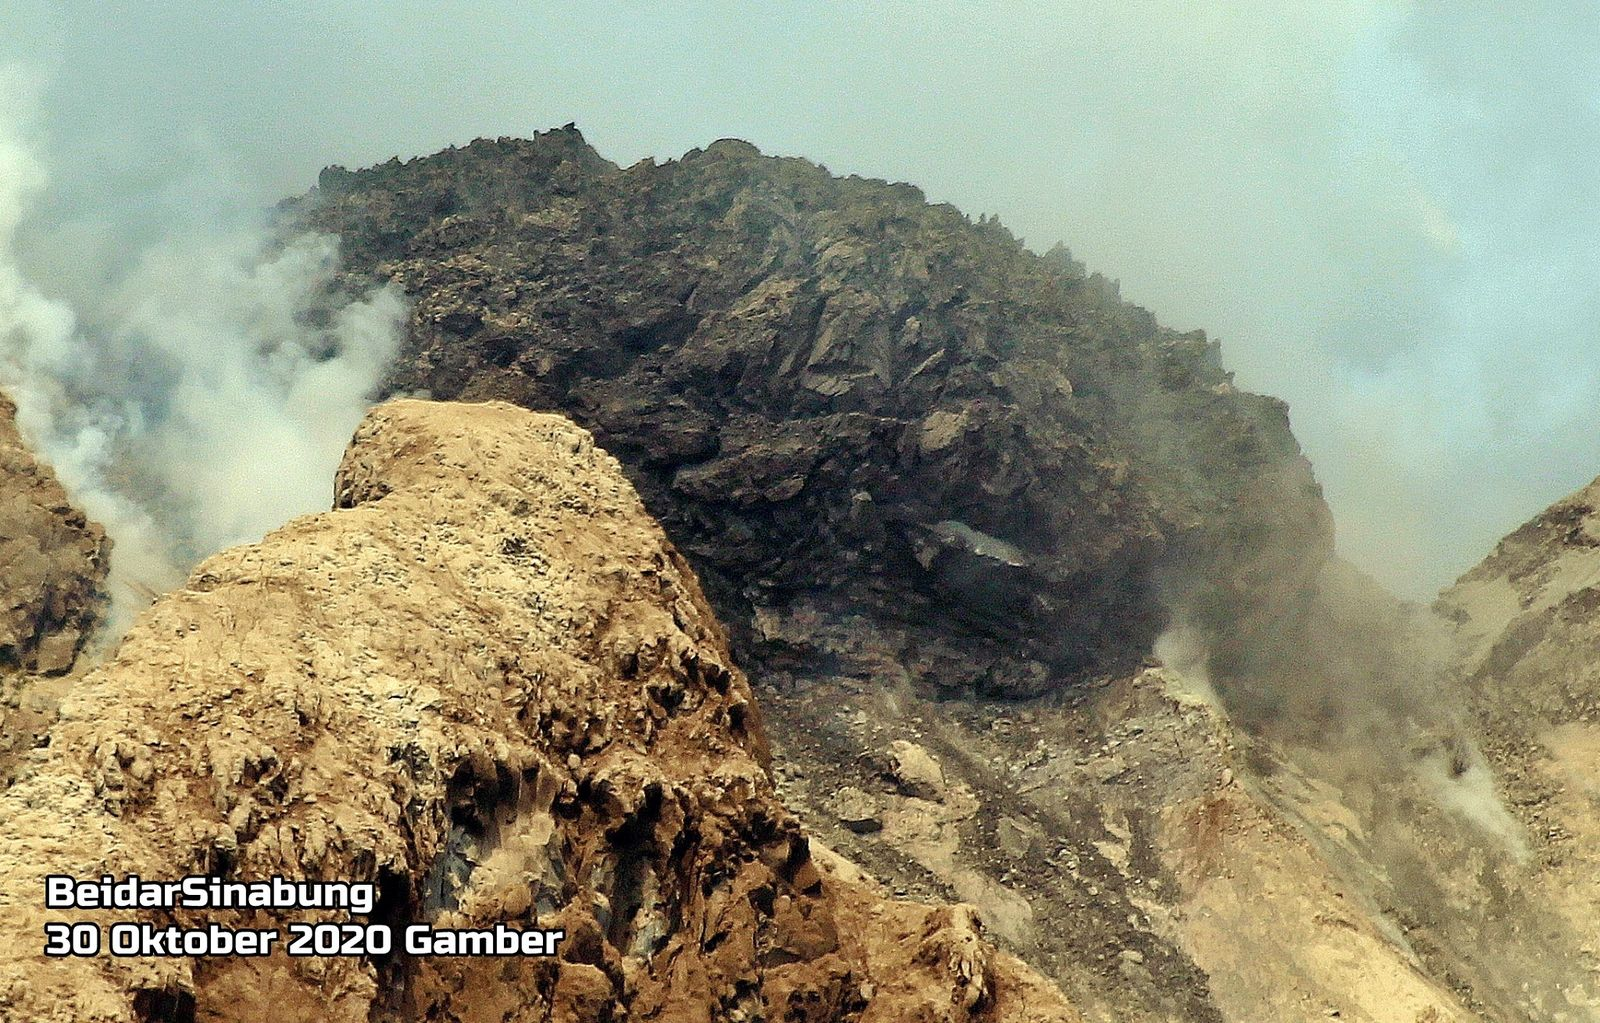 Sinabung - the impressive lava dome at the edge of the indentation - photo 30.10.2020 Firdaus Surbakti / Beidar Sinabung